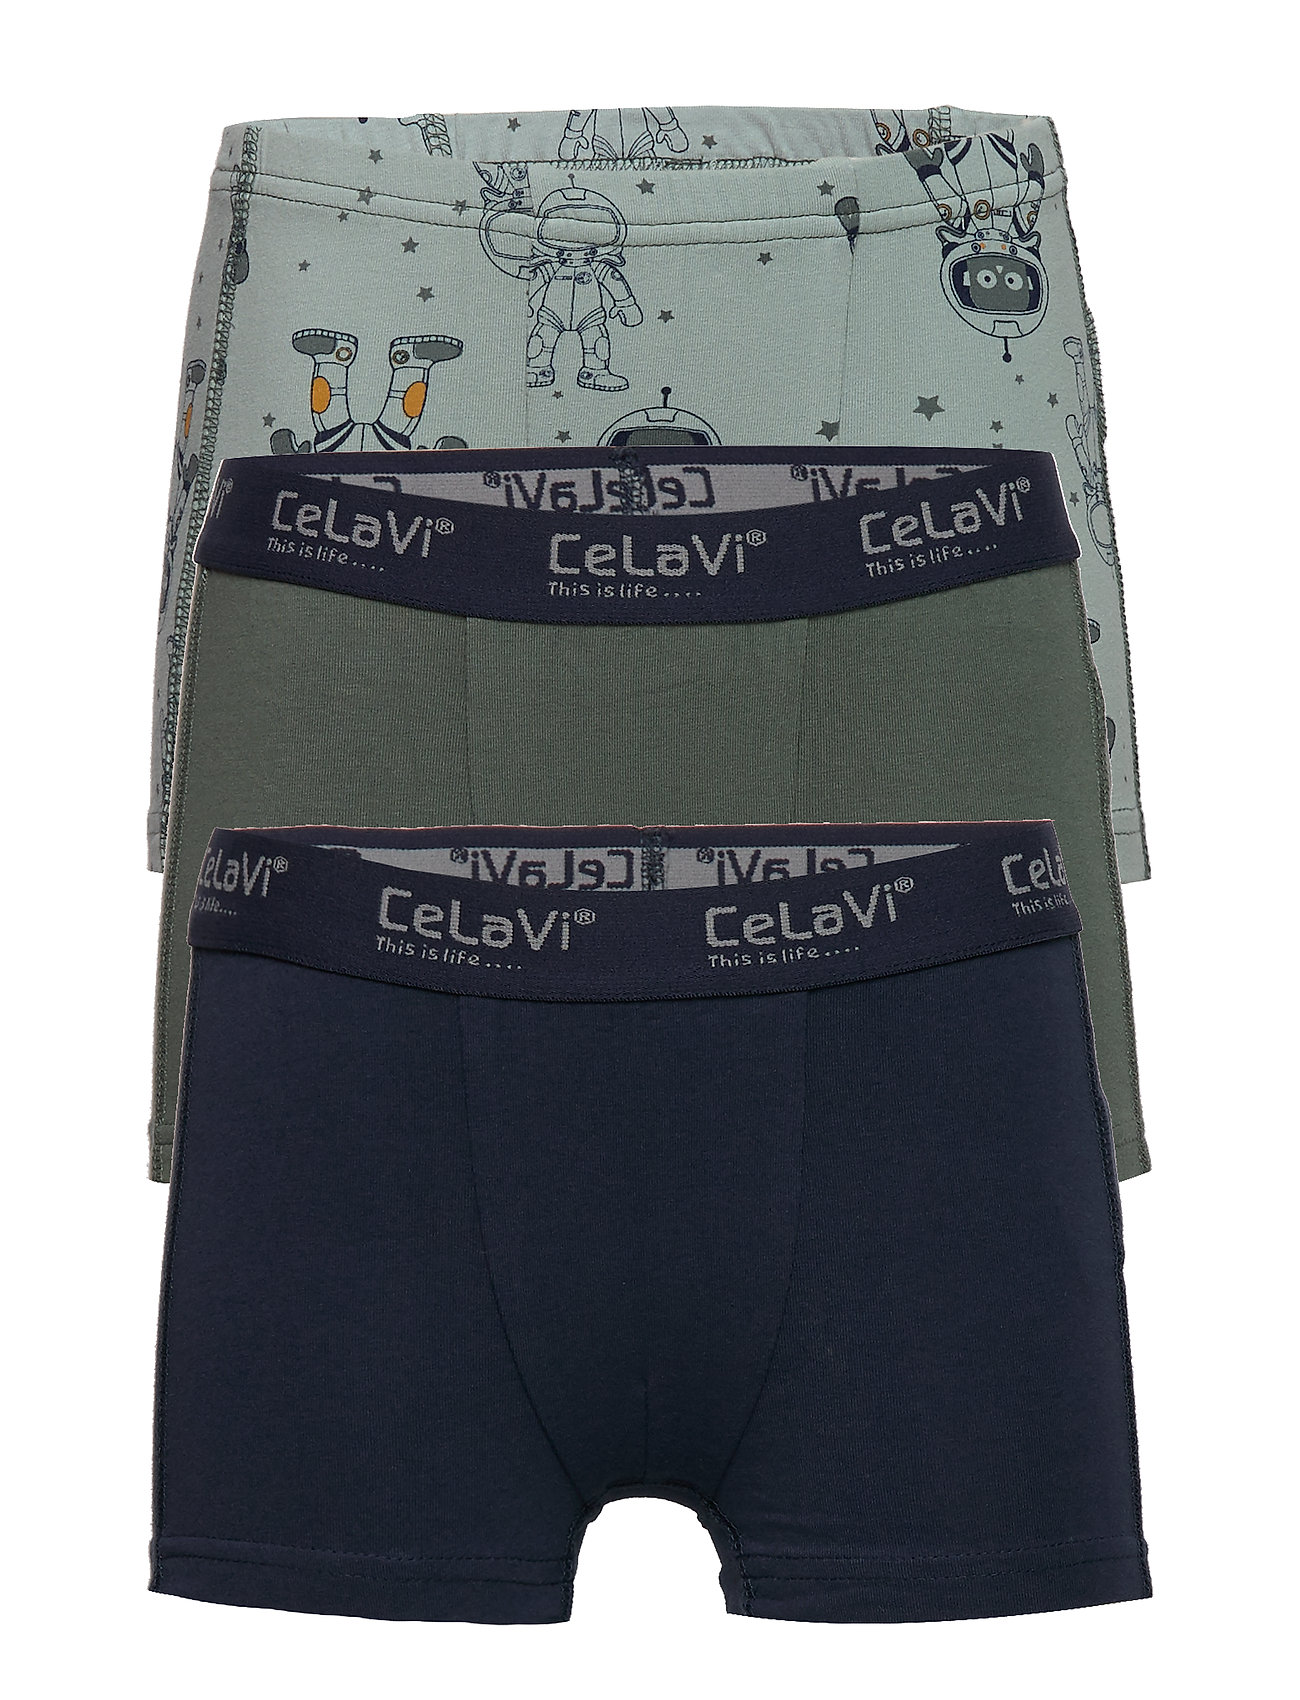 CeLaVi Boxer-shorts w. print (3-pack) - BALSAM GREEN